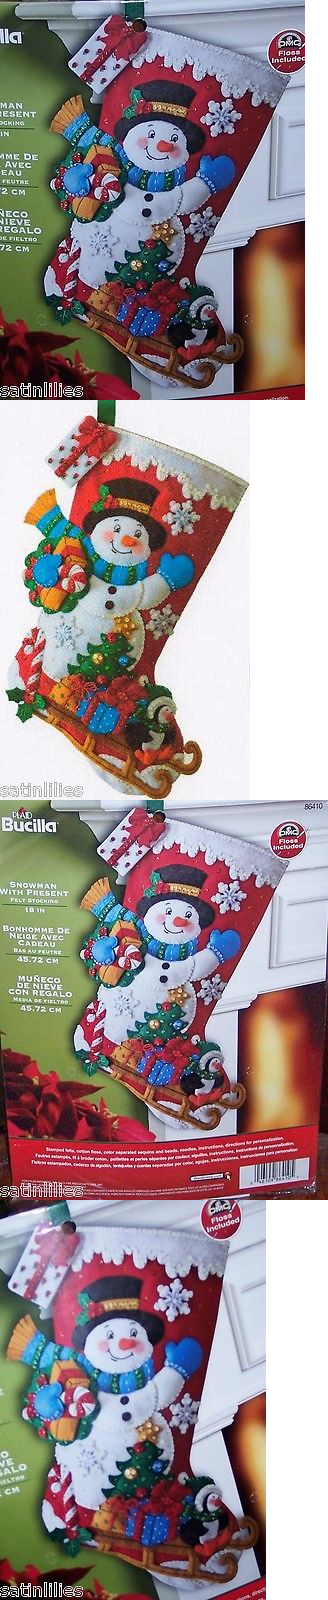 Other Hand Embroidery Kits 28142 Bucilla Snowman With Presents Felt